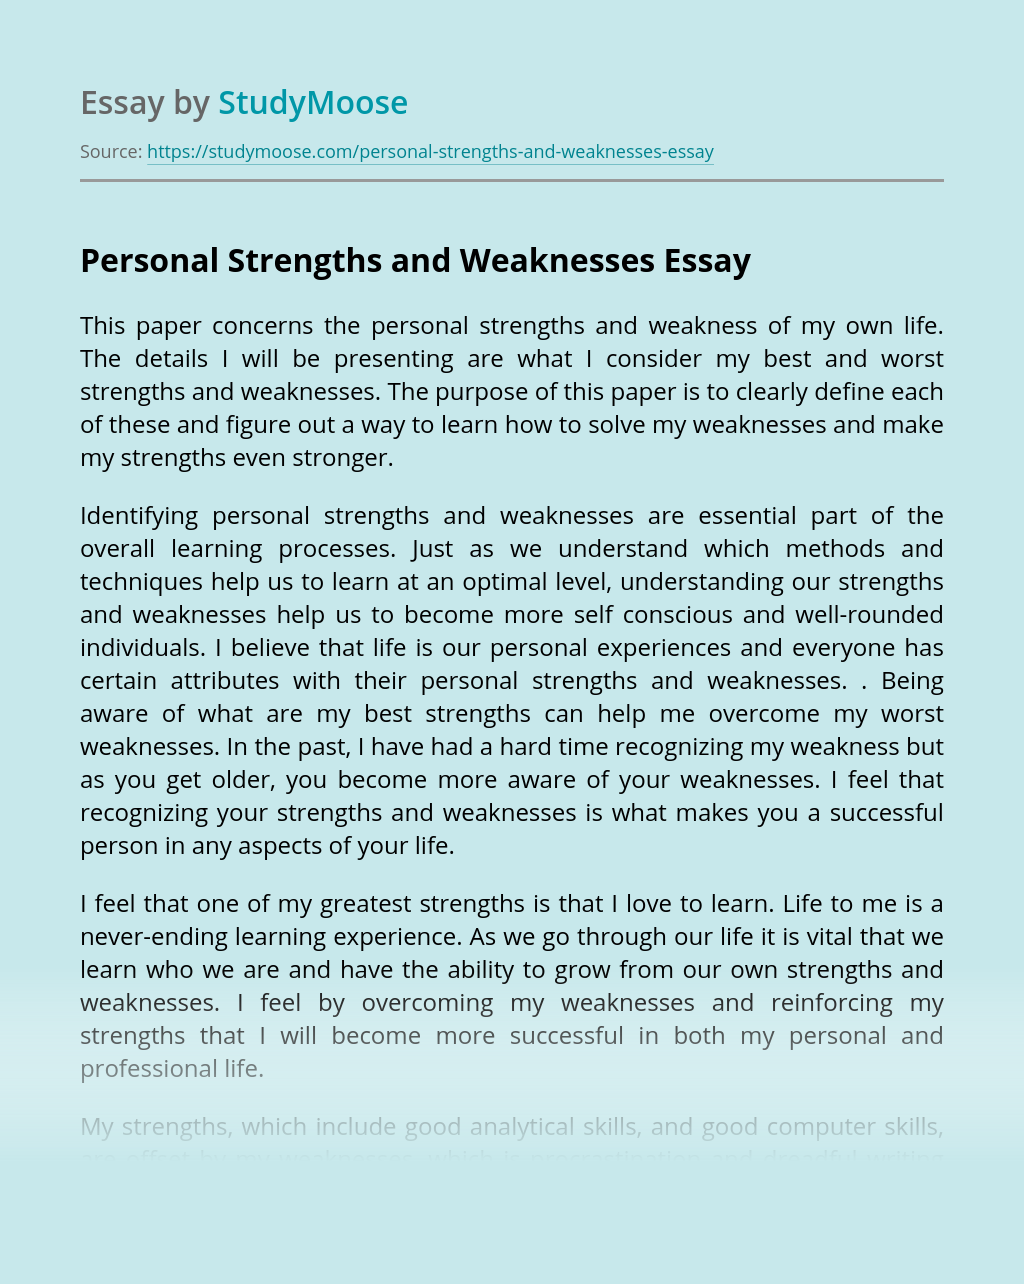 Personal Strengths and Weaknesses